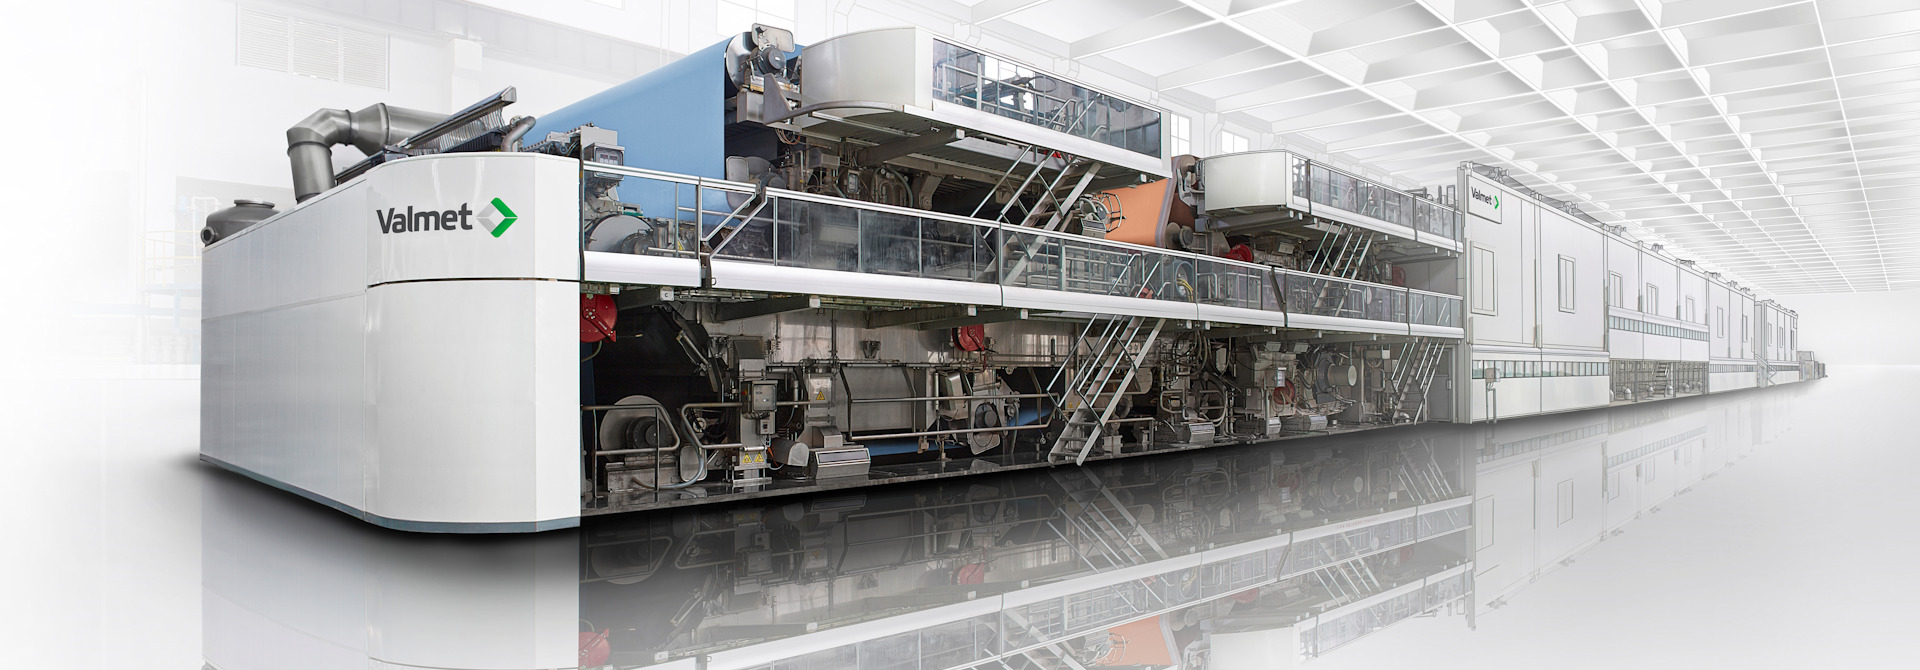 Valmet paper machines are maintained via the Secomea remote access solution.